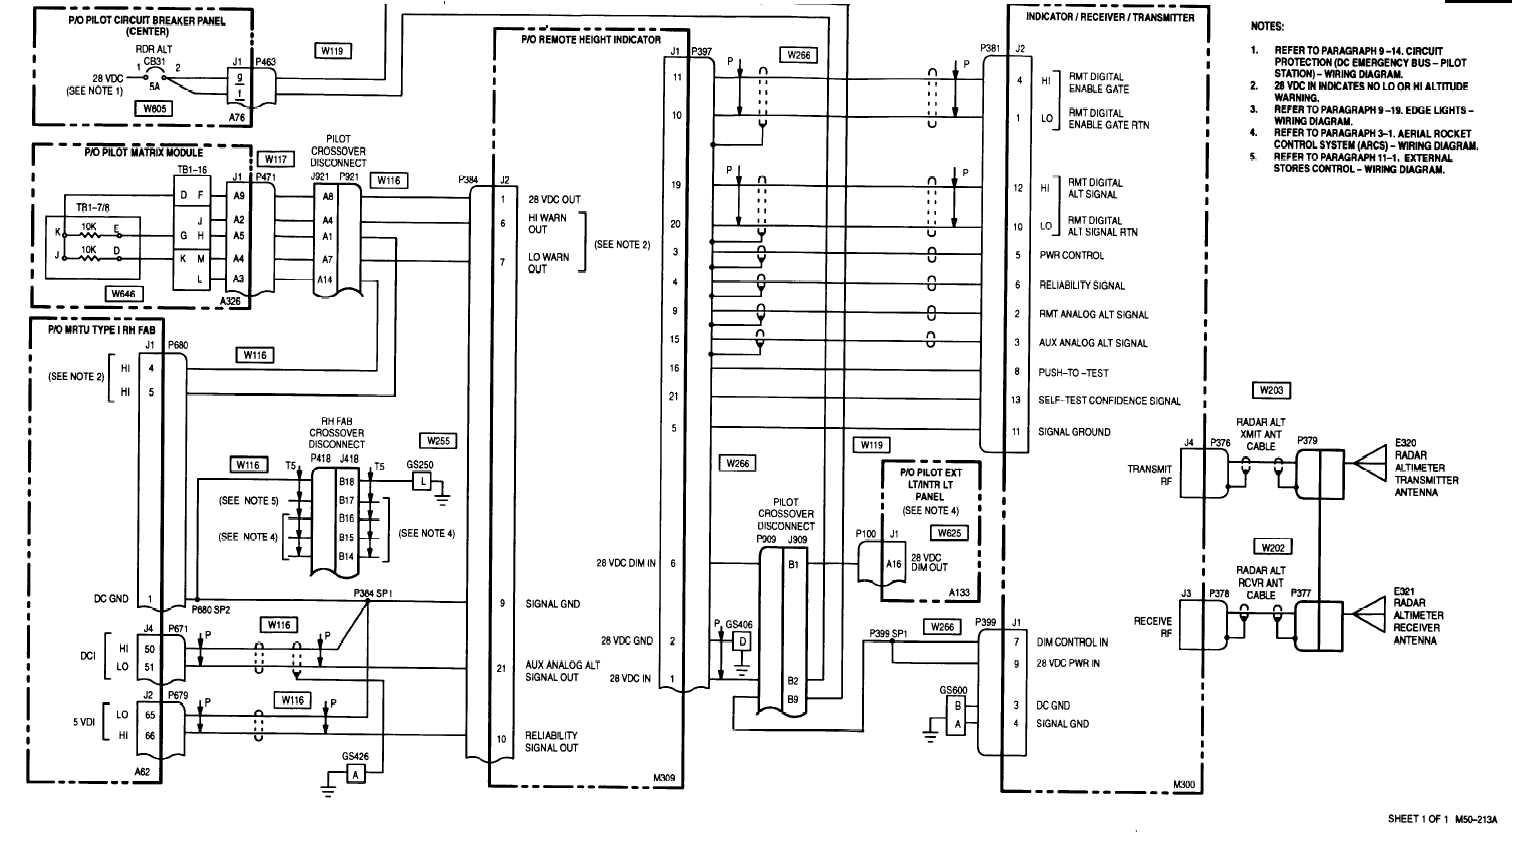 [DIAGRAM_1JK]  20-5. RADAR ALTIMETER (RADALT) SET - WIRING DIAGRAM | Altimeter Wiring Diagram |  | Integrated Publishing